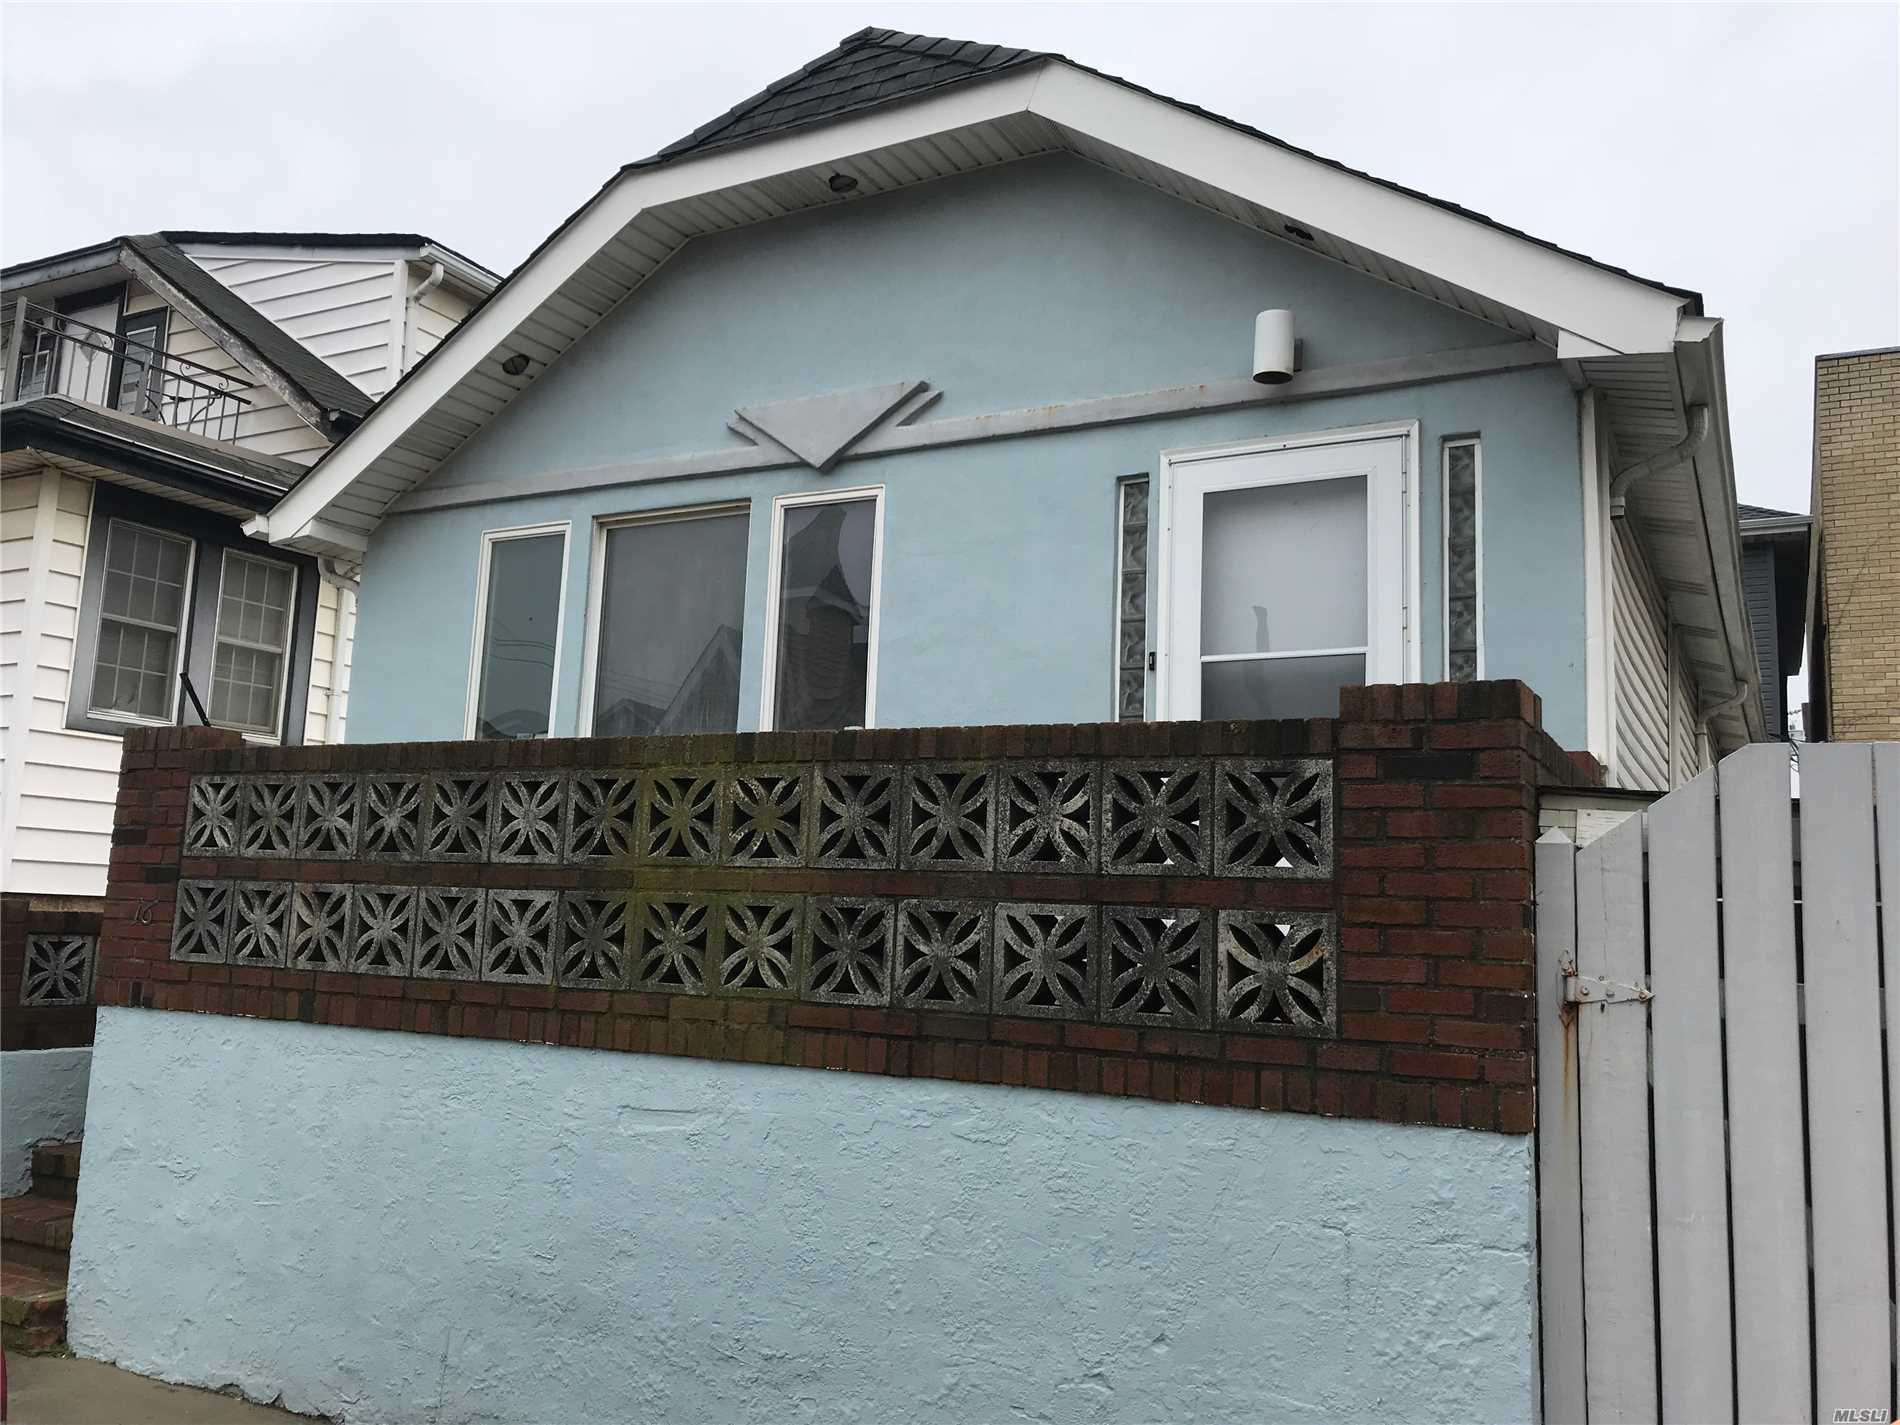 Whole House Rental In The West End Of Long Beach, Cathedral Ceilings. Open Airy Floor Plan, Eff Kitchen, Living Rm/Dinette, Bedroom, Bedroom, Full Bath W/ Tub And Stall Shower,  Washer/Dryer, Attic, Dog Run Around House. Attic Pets Welcomed